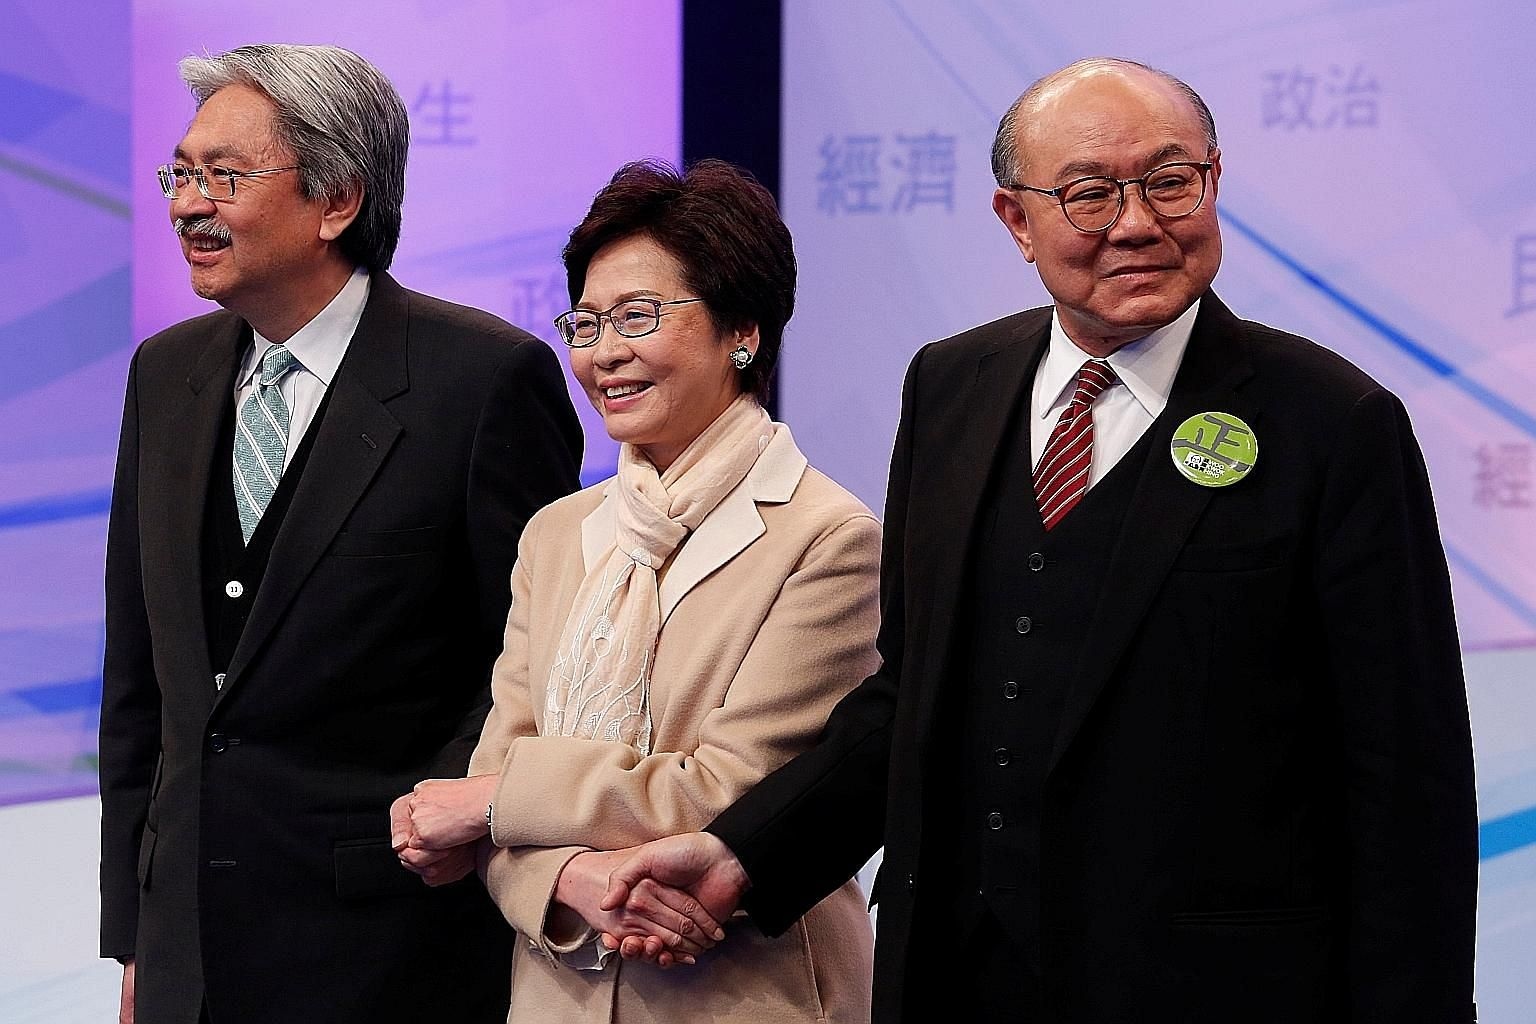 Chief executive candidates John Tsang (left), Carrie Lam and Woo Kwok Hing sharing the same stage for the first time last night to spar on political, economic and livelihood issues, with the hope of winning over public opinion.